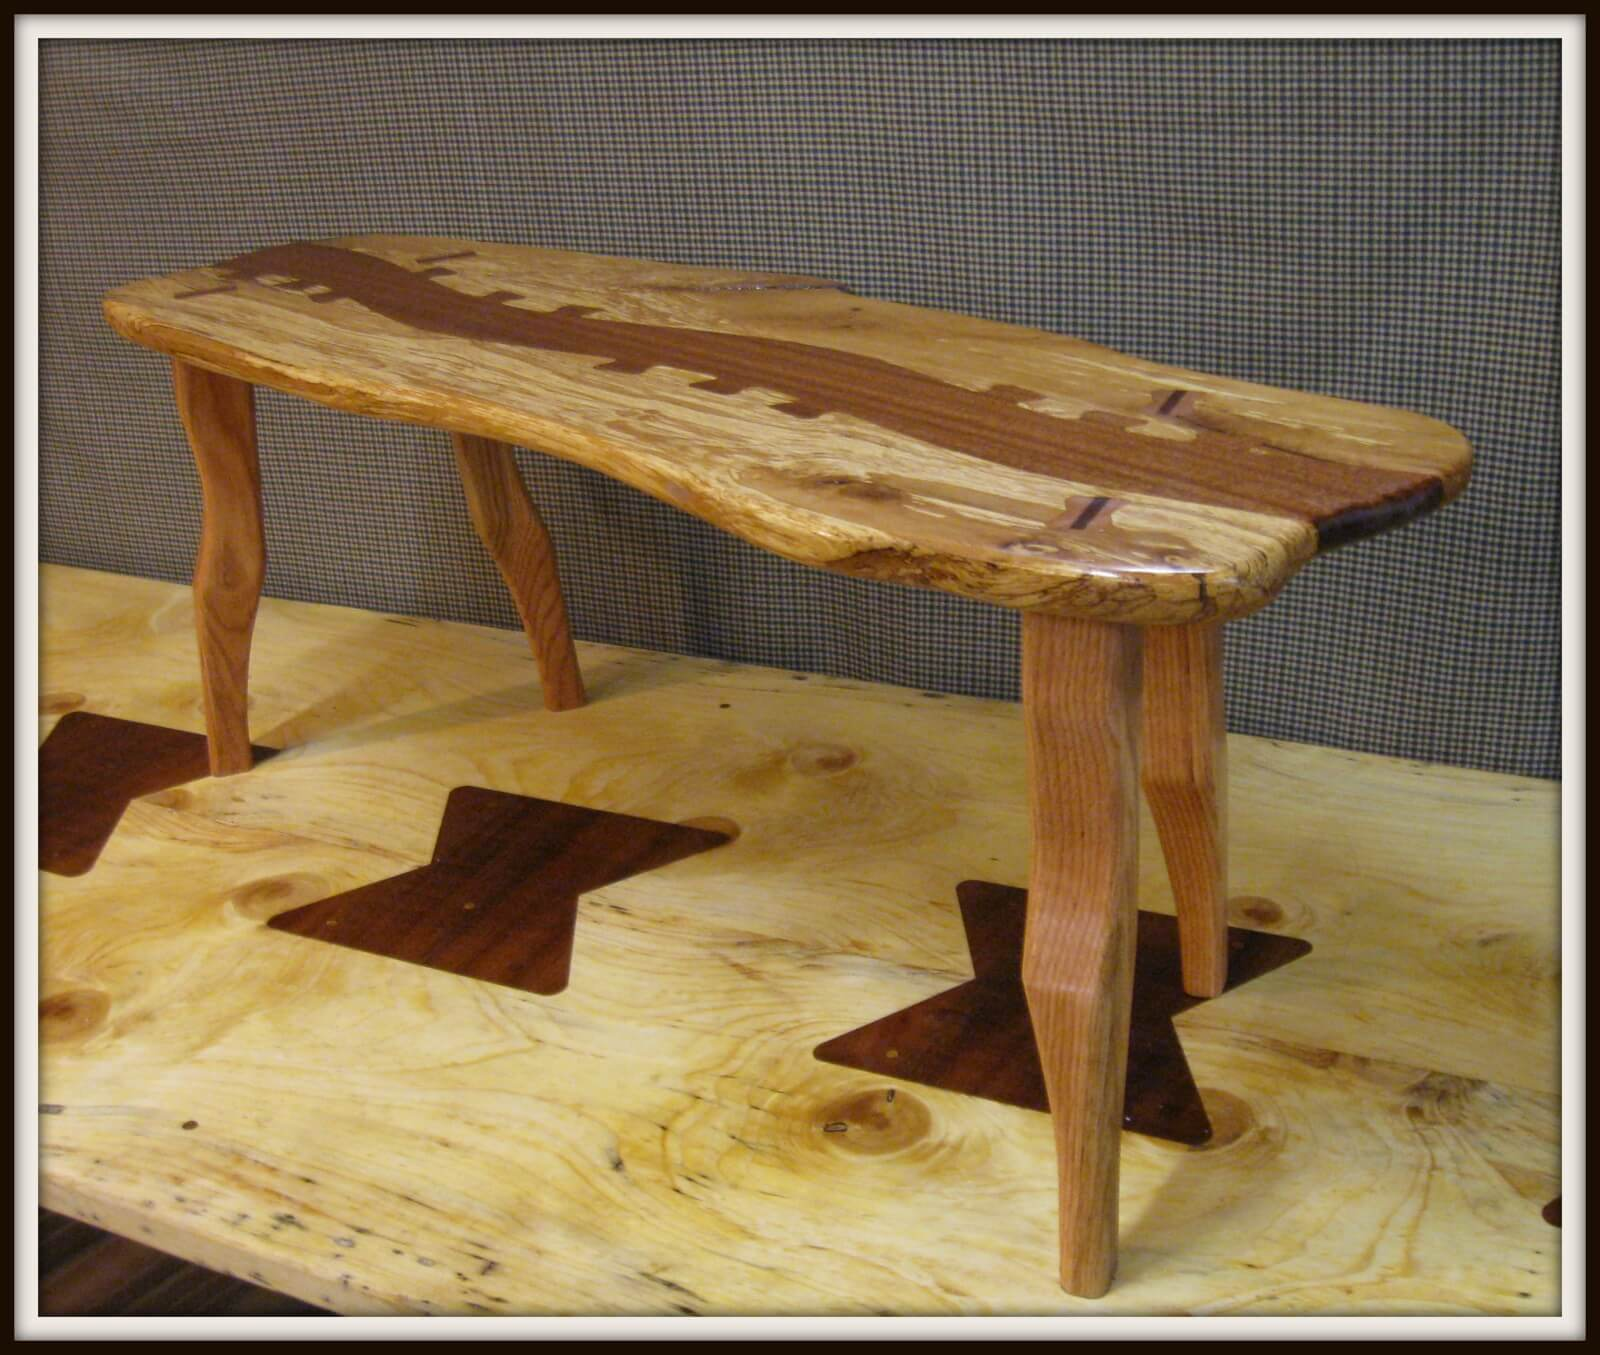 Harnett Designs Woodworking: Maple Live Edge Table, handcrafted furniture